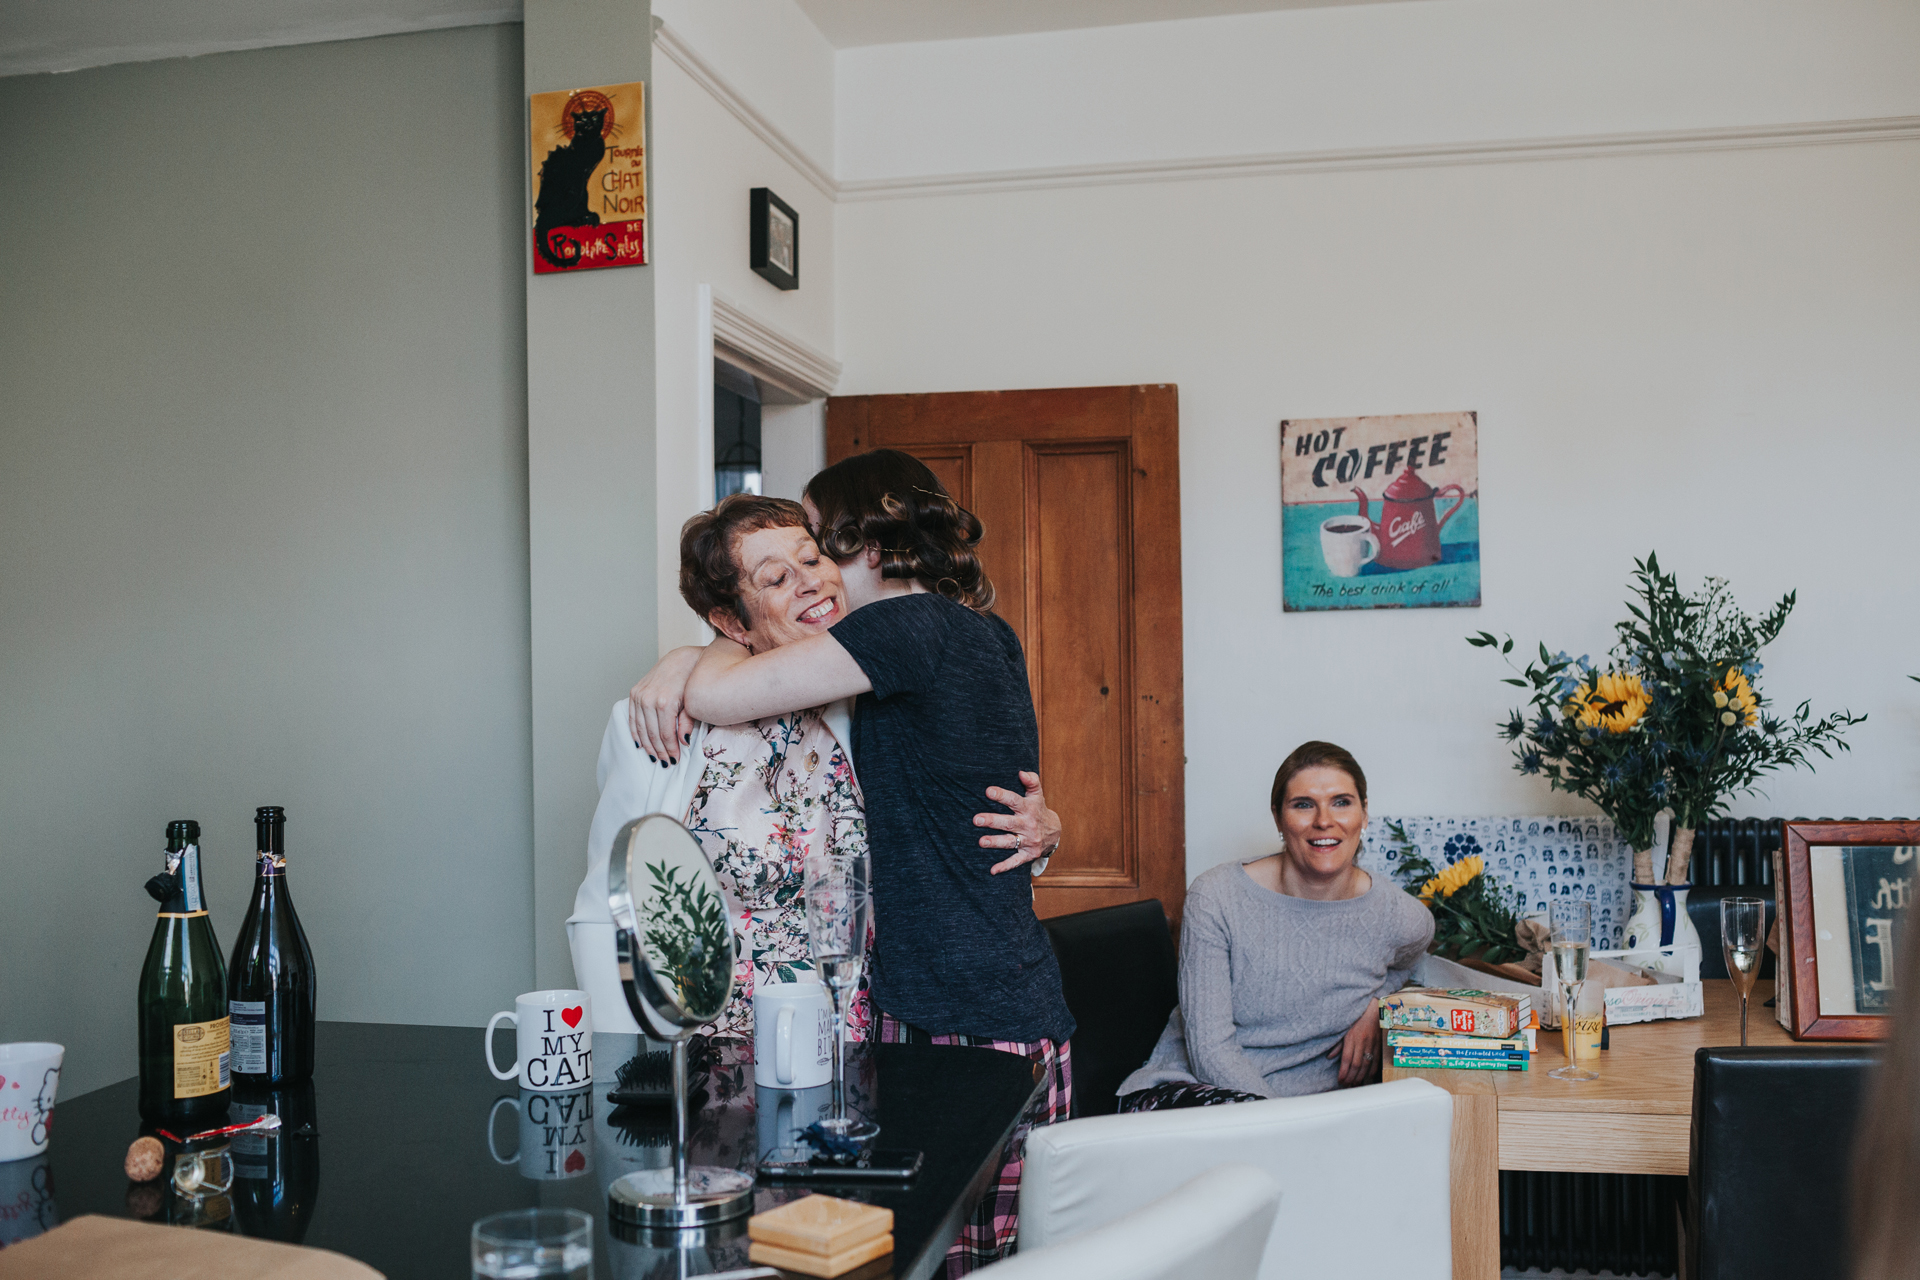 Mum and Bride have a hug in the kitchen on the morning of her wedding day.